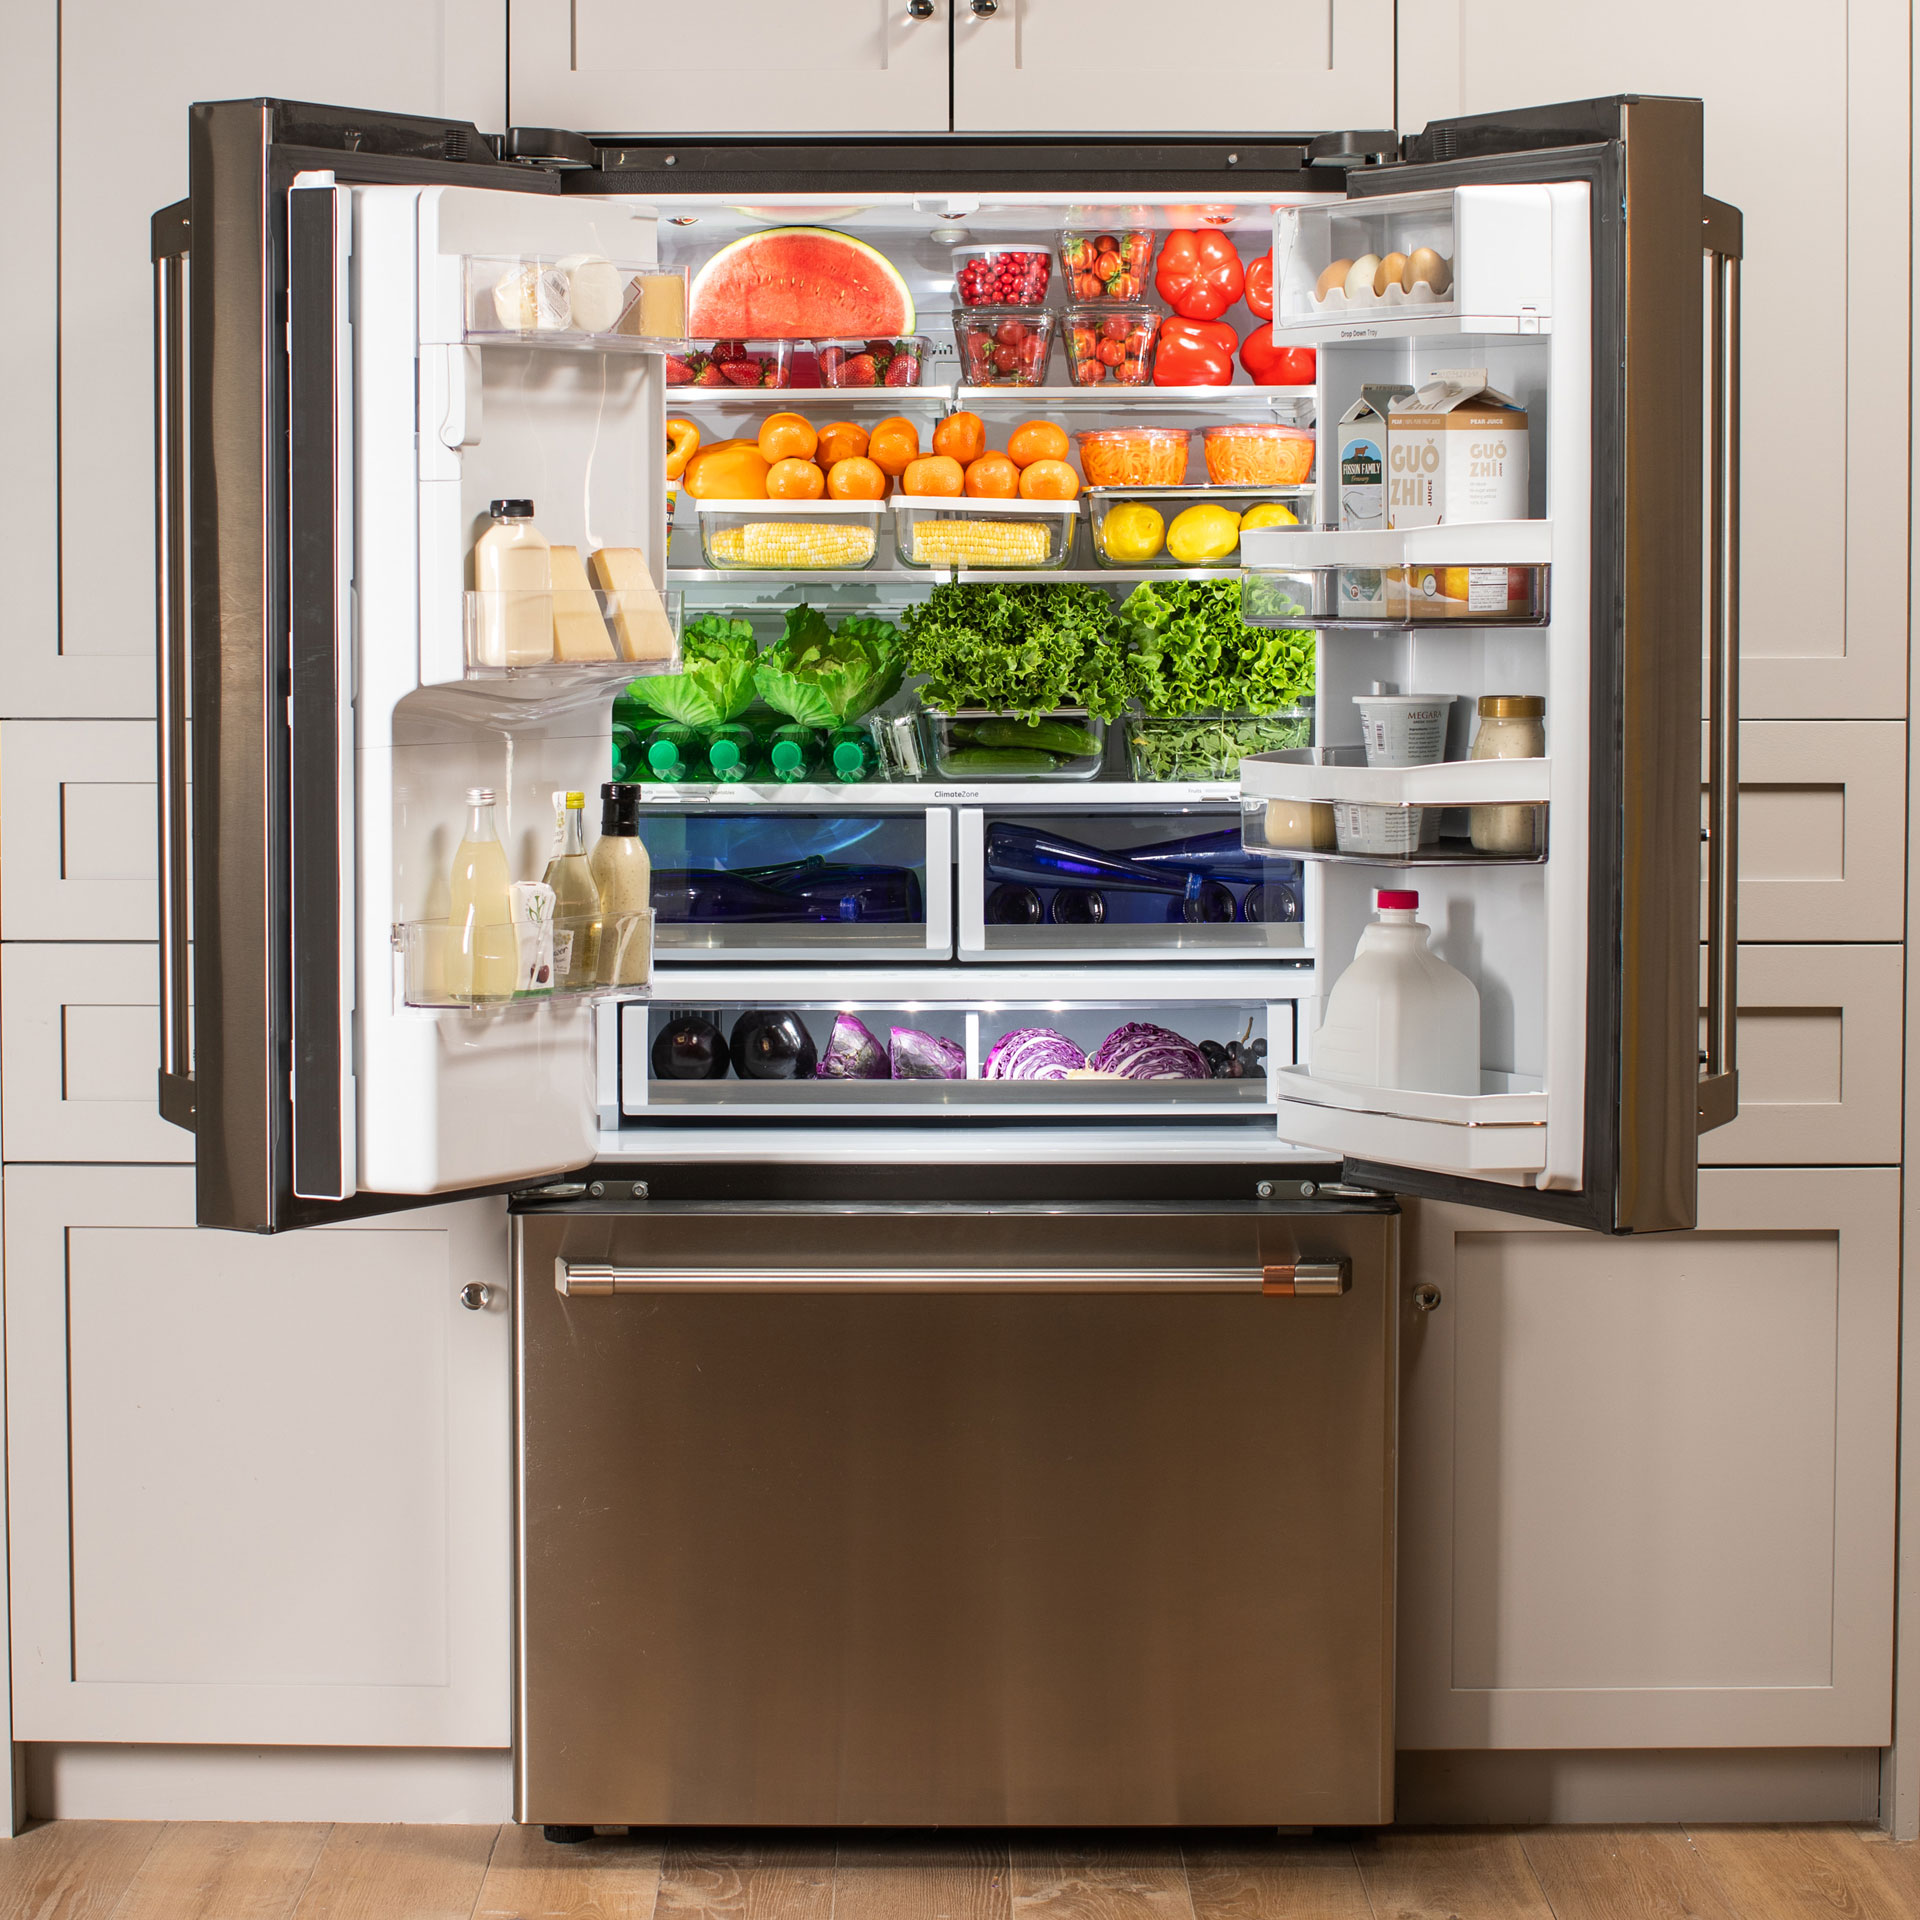 Stainless steel Cafe refrigerator with doors open showing a rainbow of produce